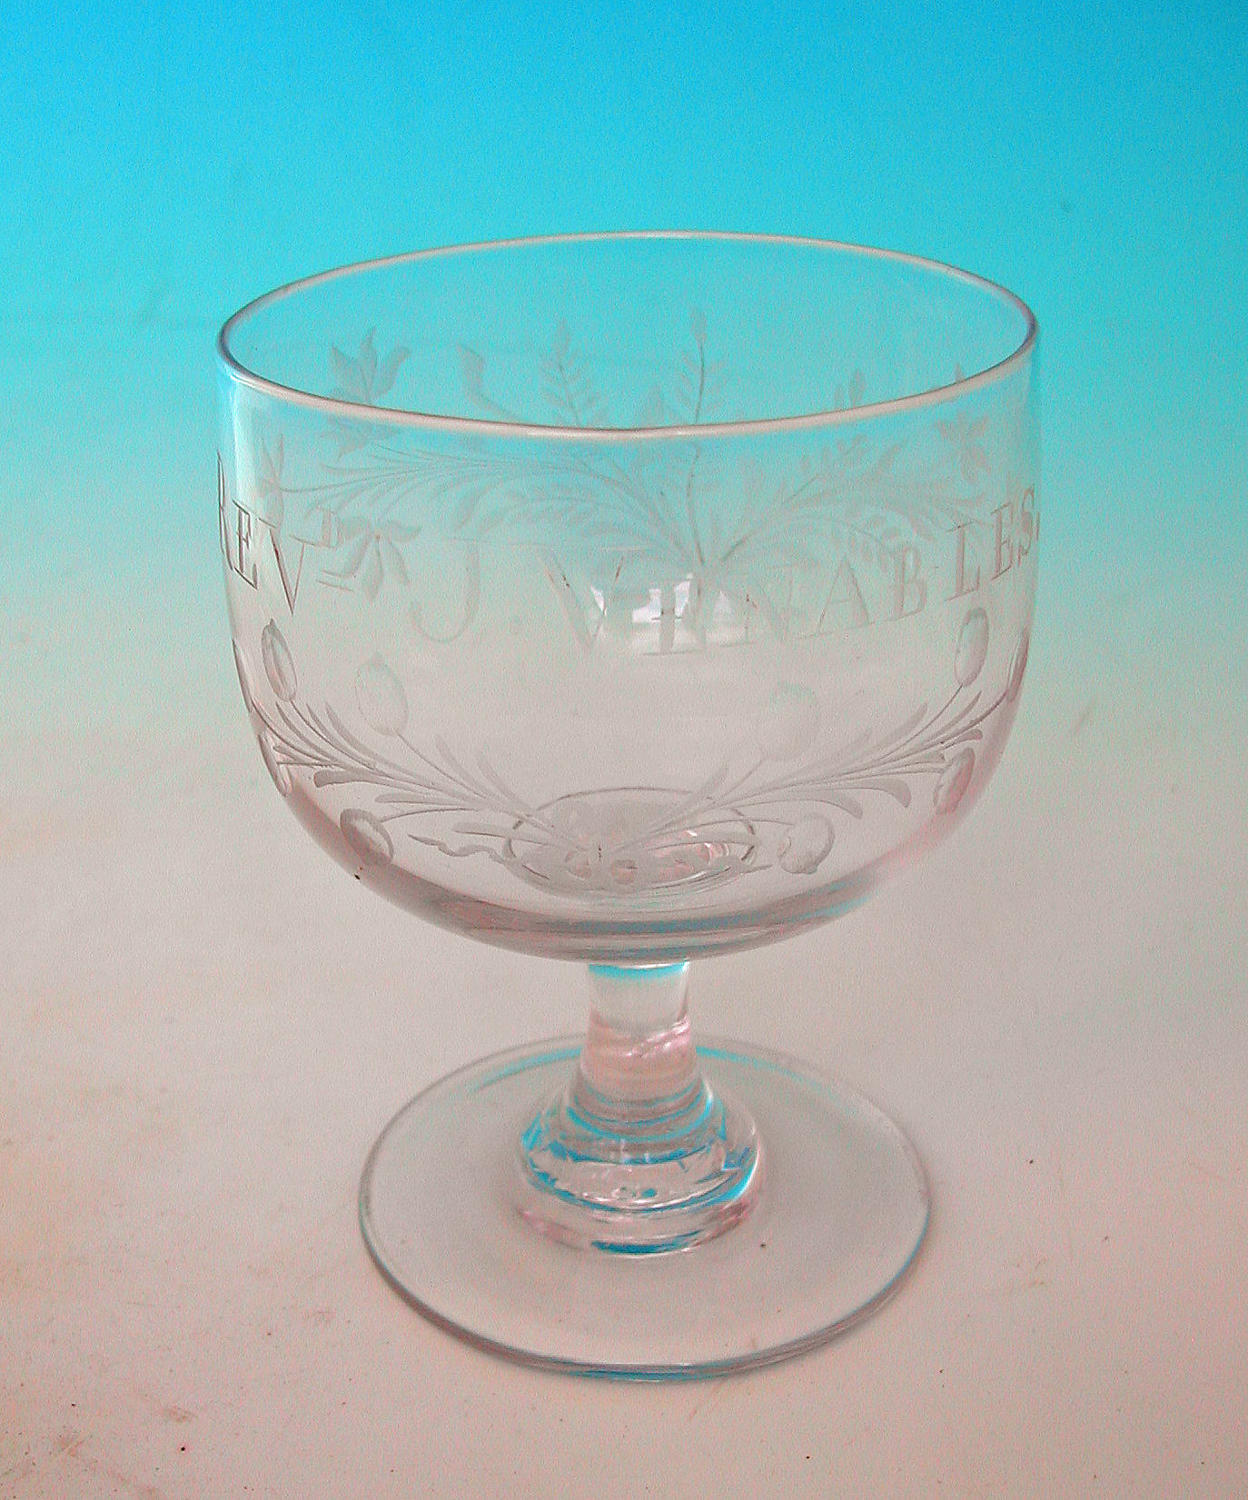 Antique 19thc Mead Glass Engraved Revd J. Venables. English. C1820-40